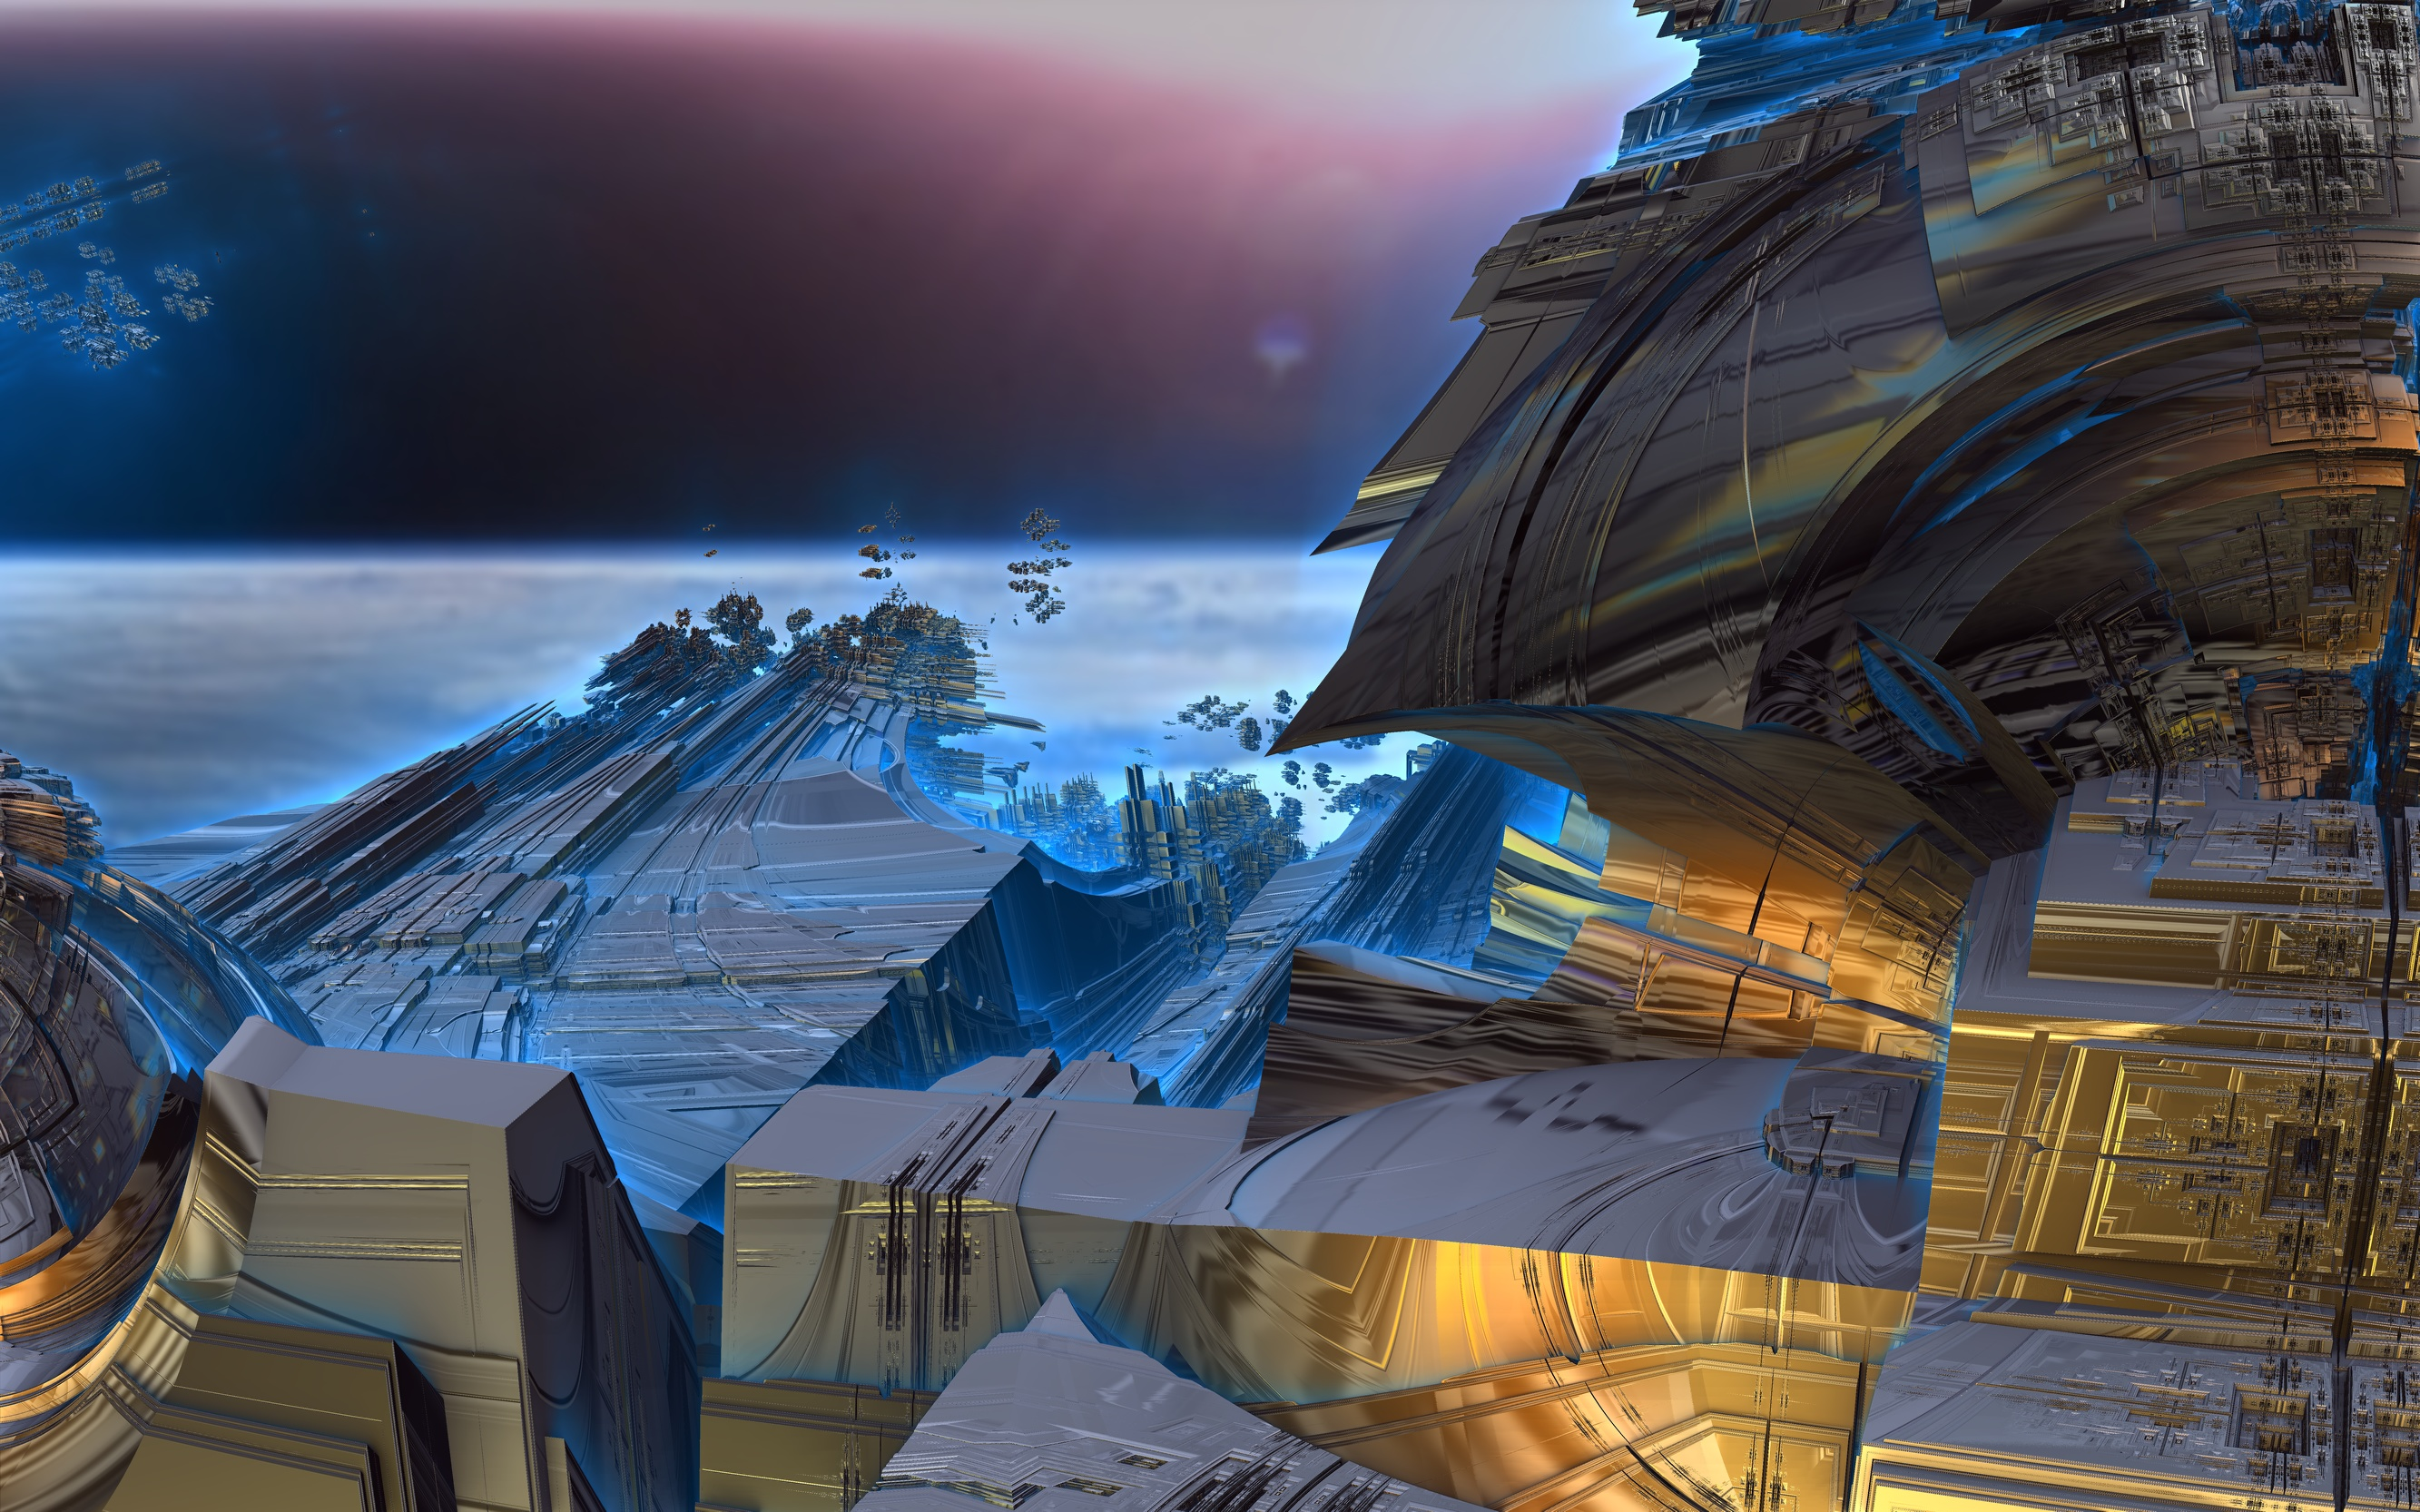 TEASERS 4 - The Metal City by Topas2012